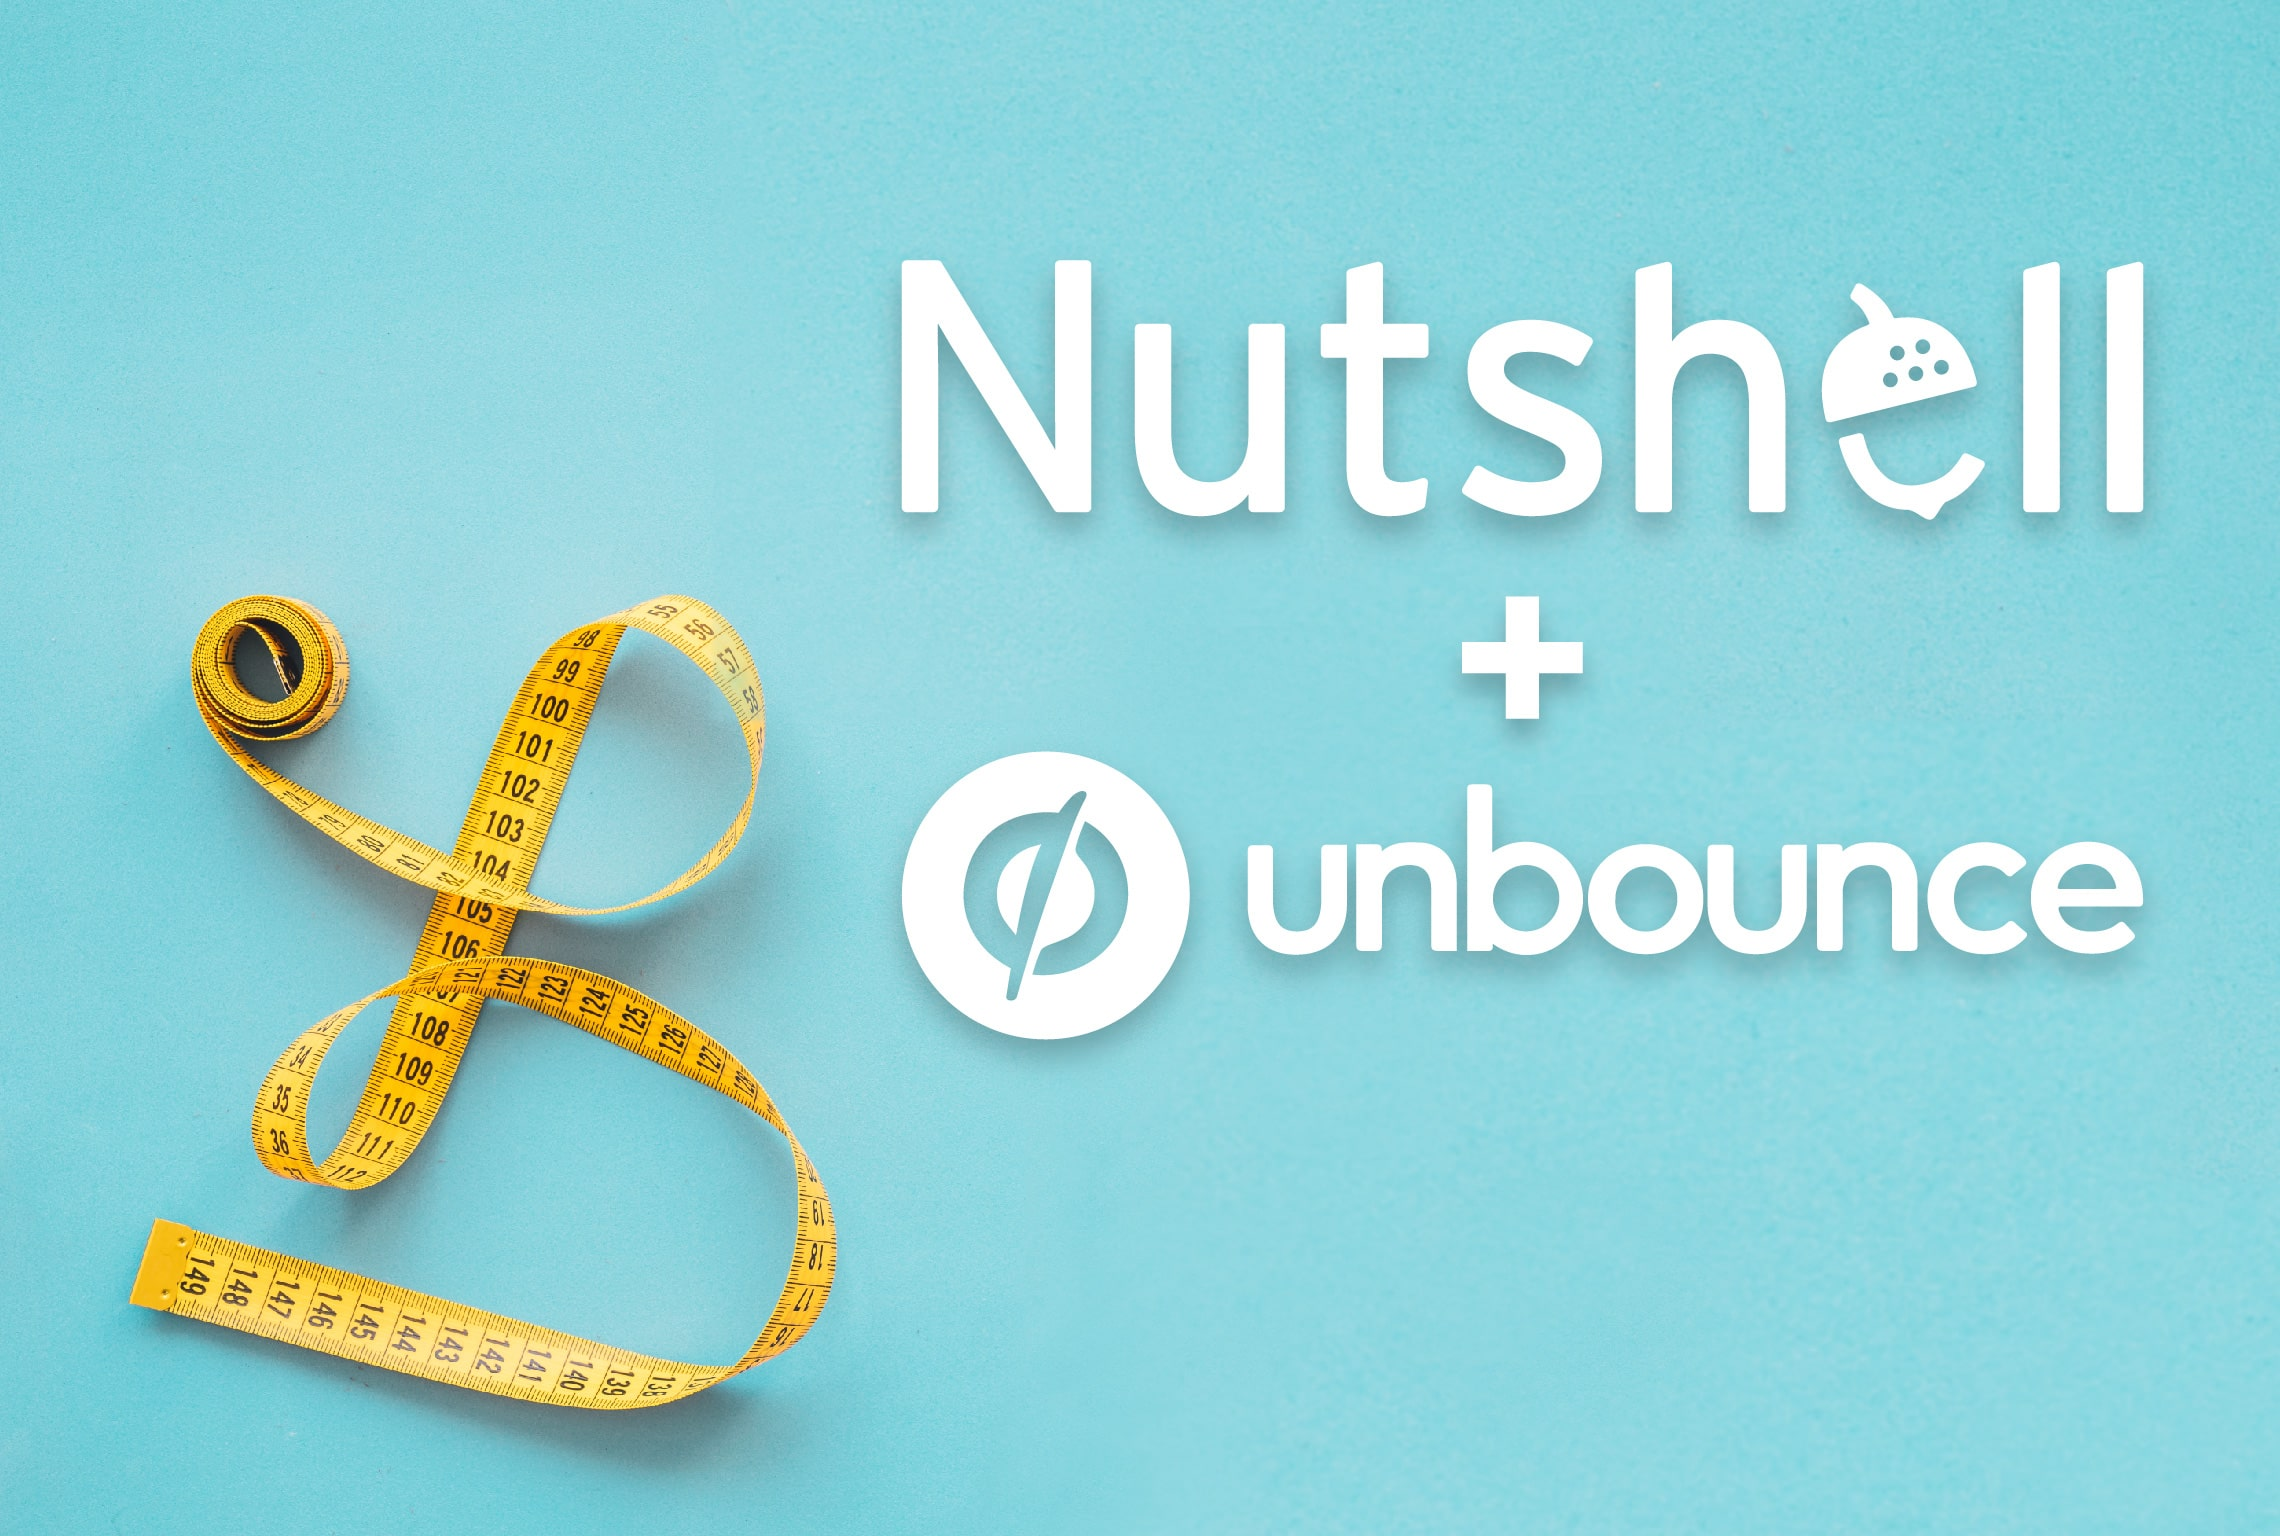 nutshell unbounce crm integration